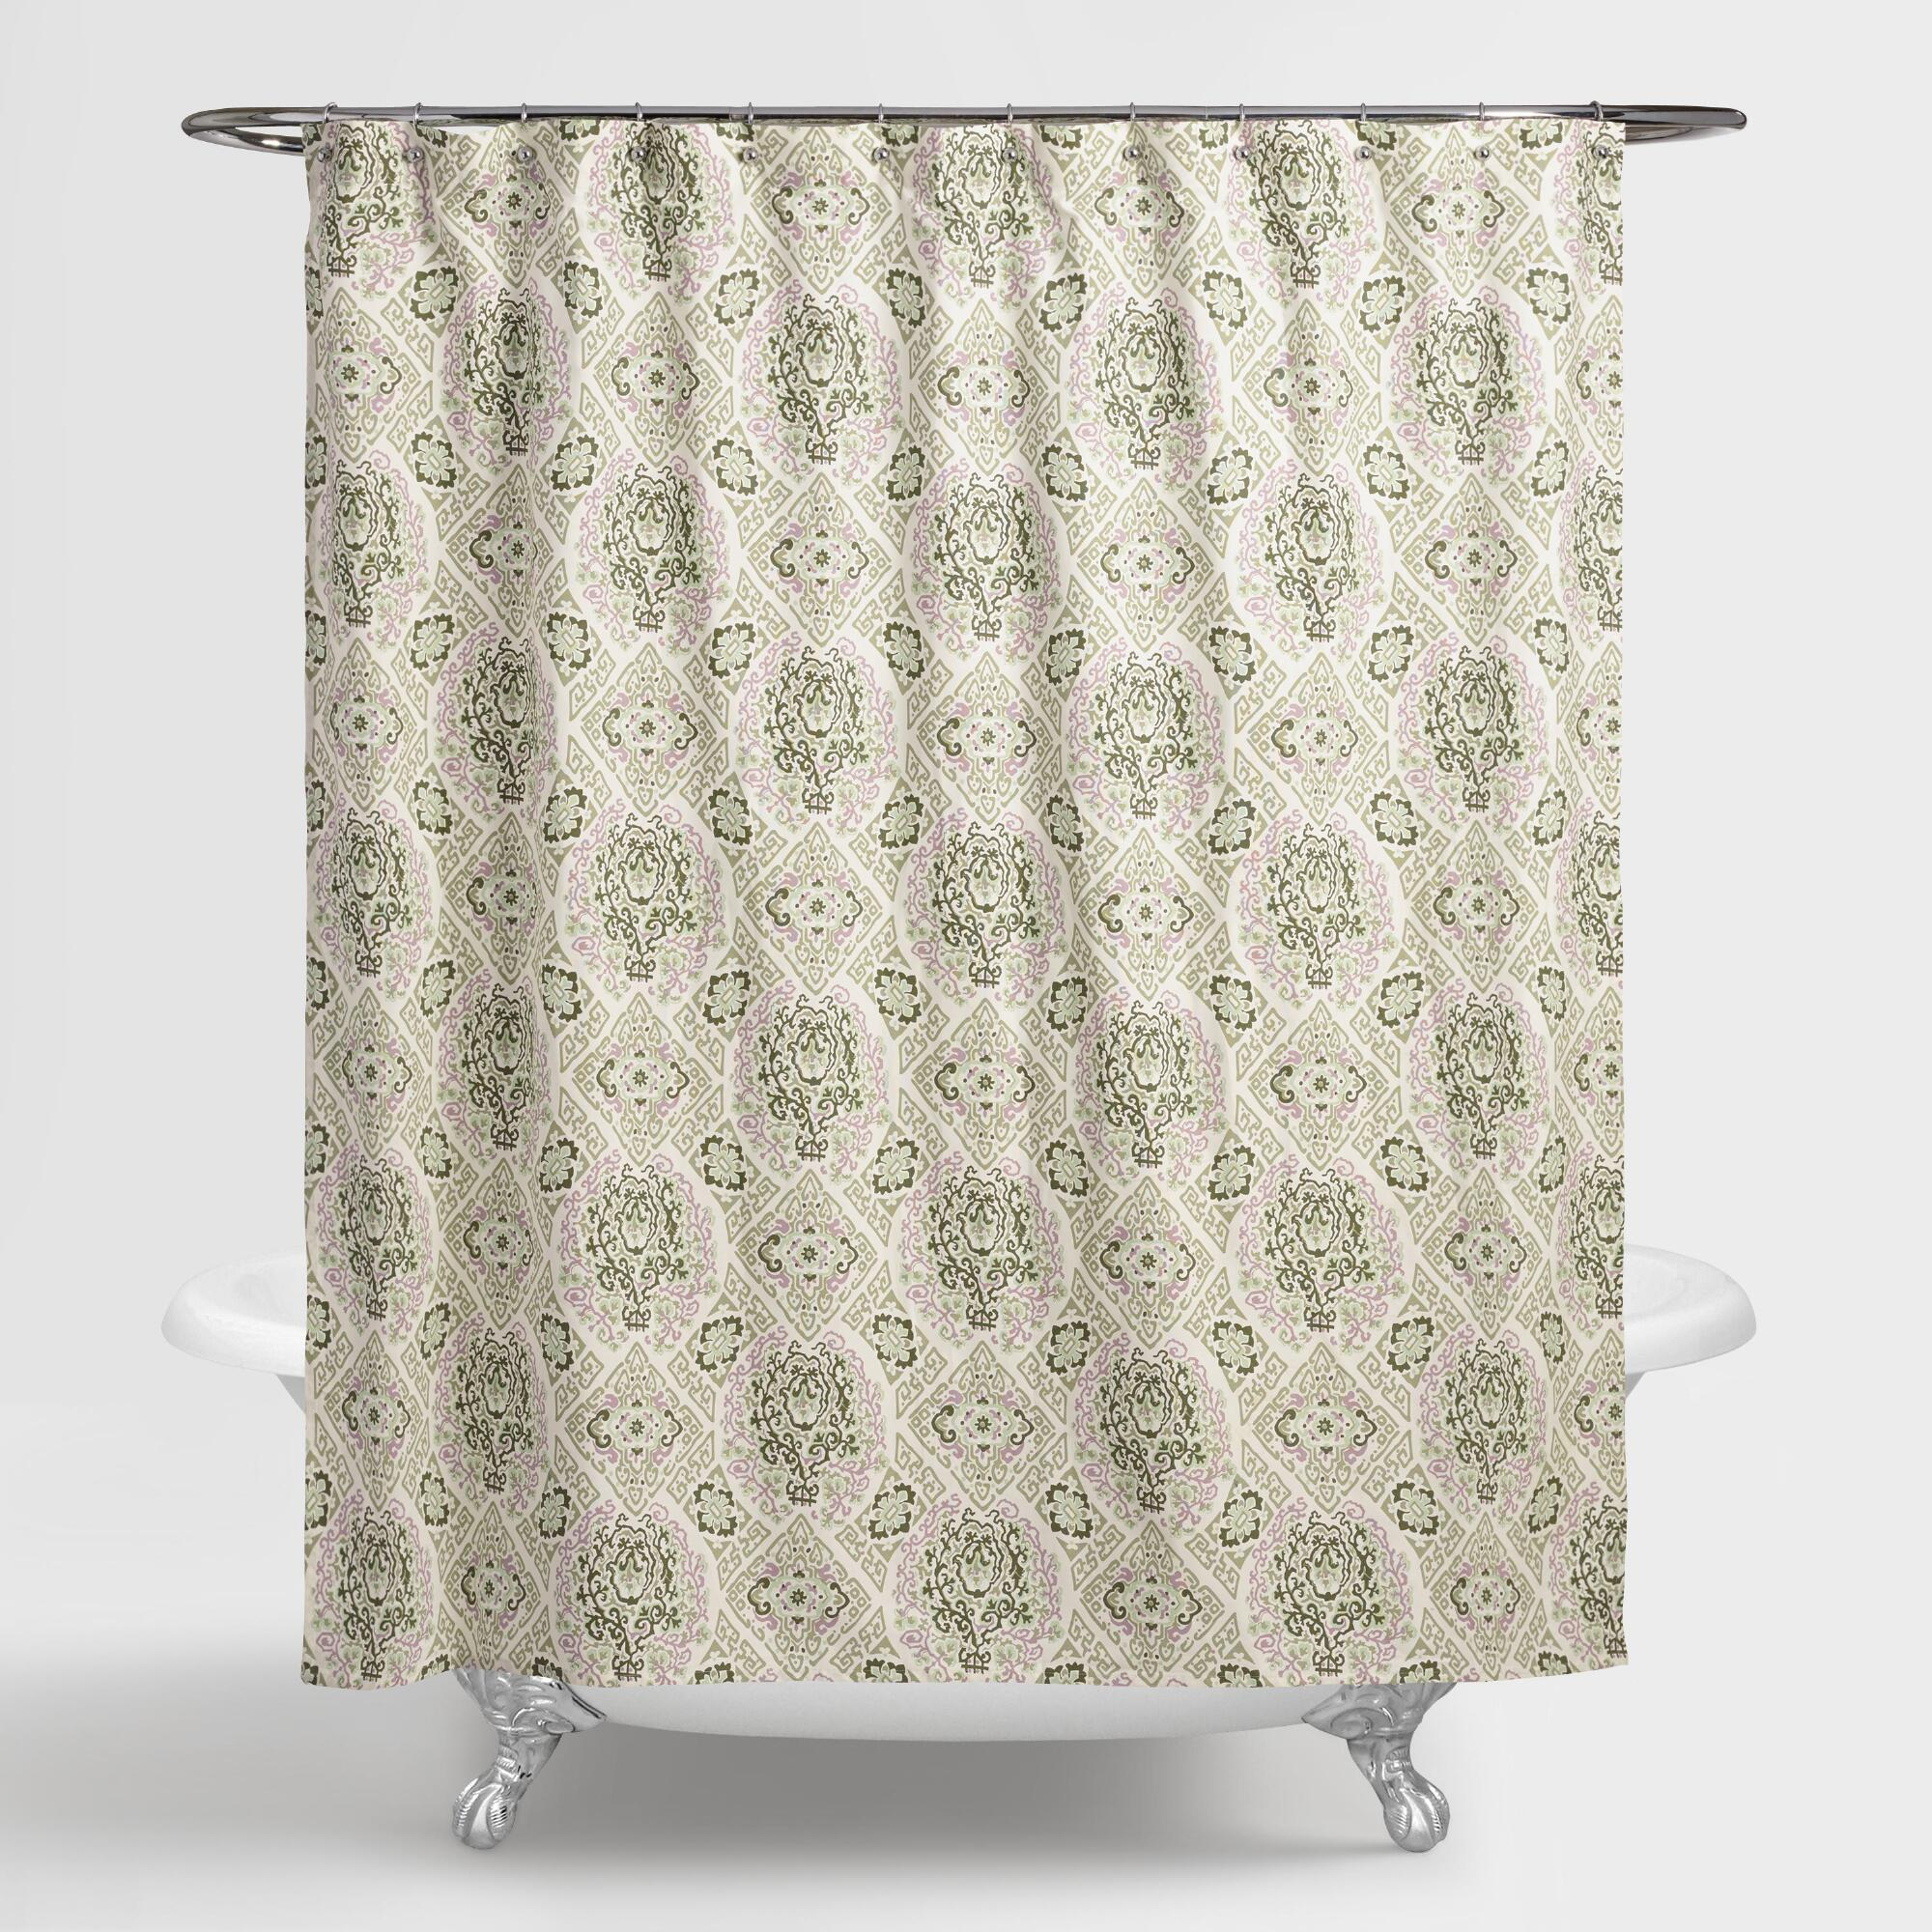 Corner Shower Curtain Rod Ceiling Support | Blankets & Throws Ideas ...